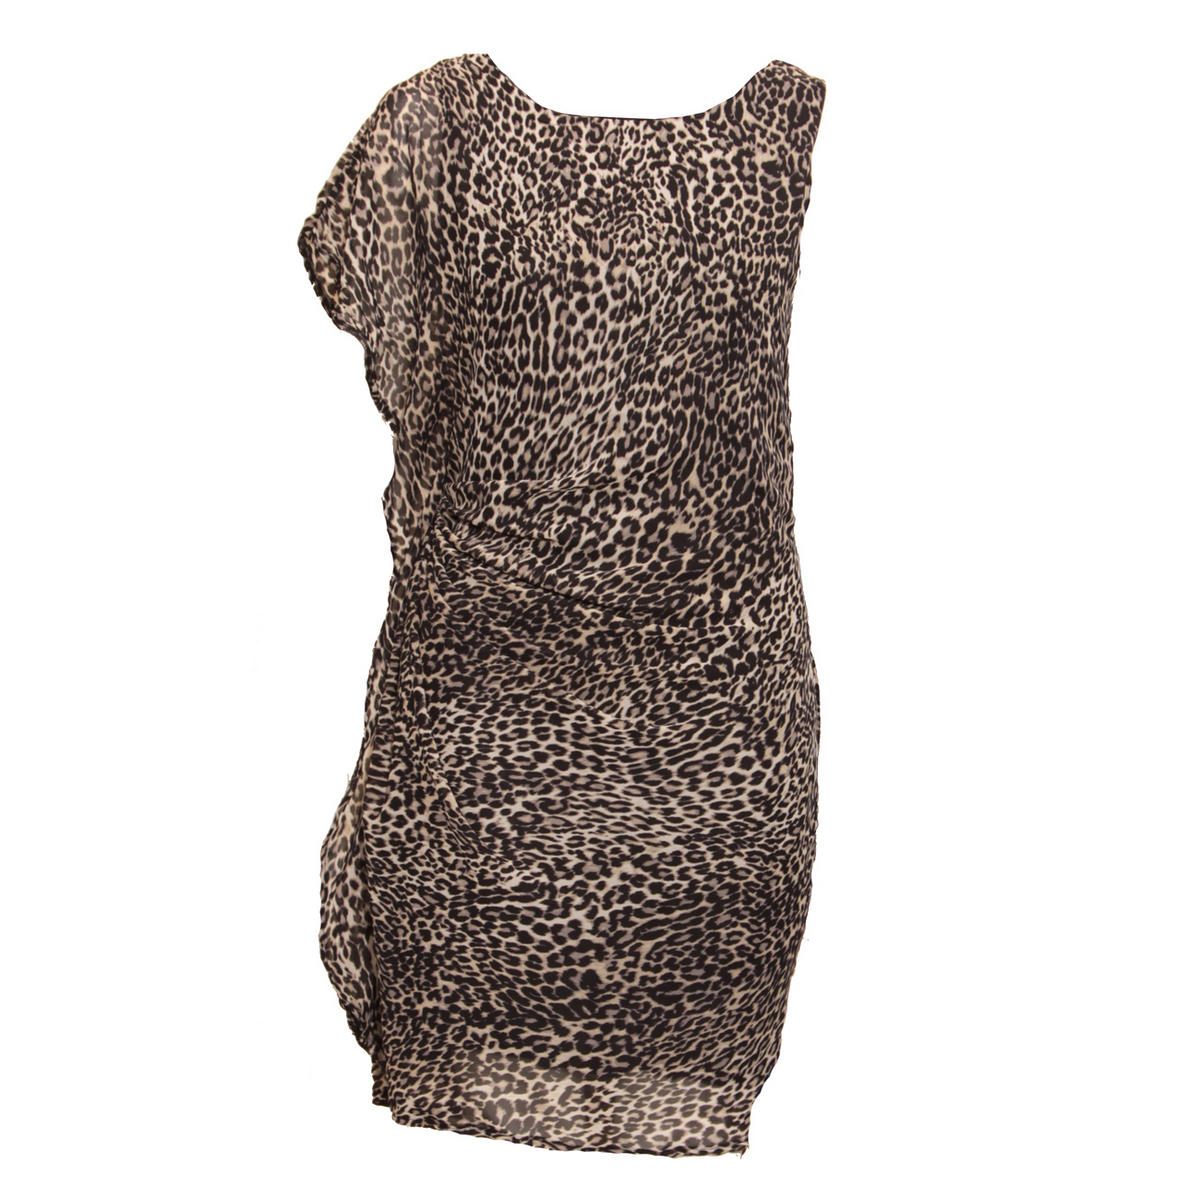 SIZE 12 ONLY Grey Leopard Print Ruffle Pleat Dress Preview